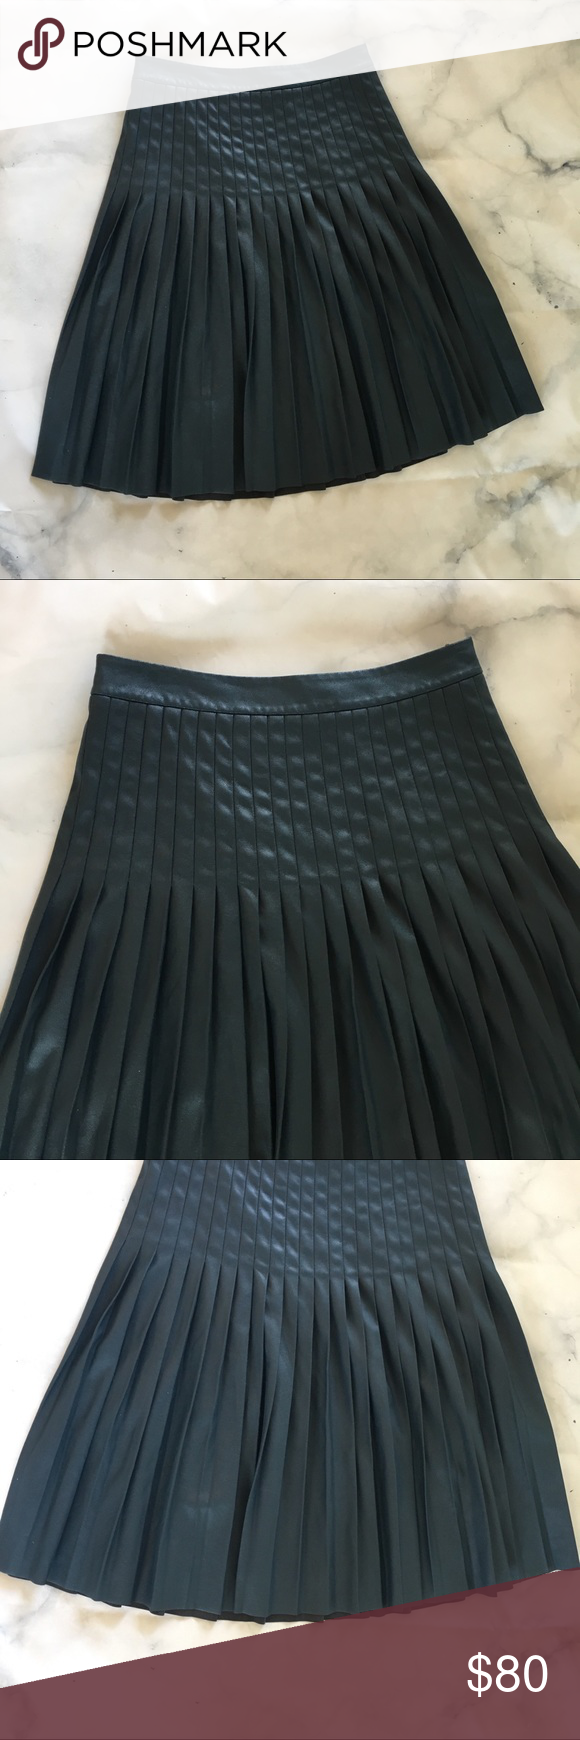 c7739f9864 Rebecca Taylor Vegan Leather Skirt Pleated Blue 2 Rebecca Taylor Pleated  Vegan Leather Skirt Adorable and a very versatile closet staple.